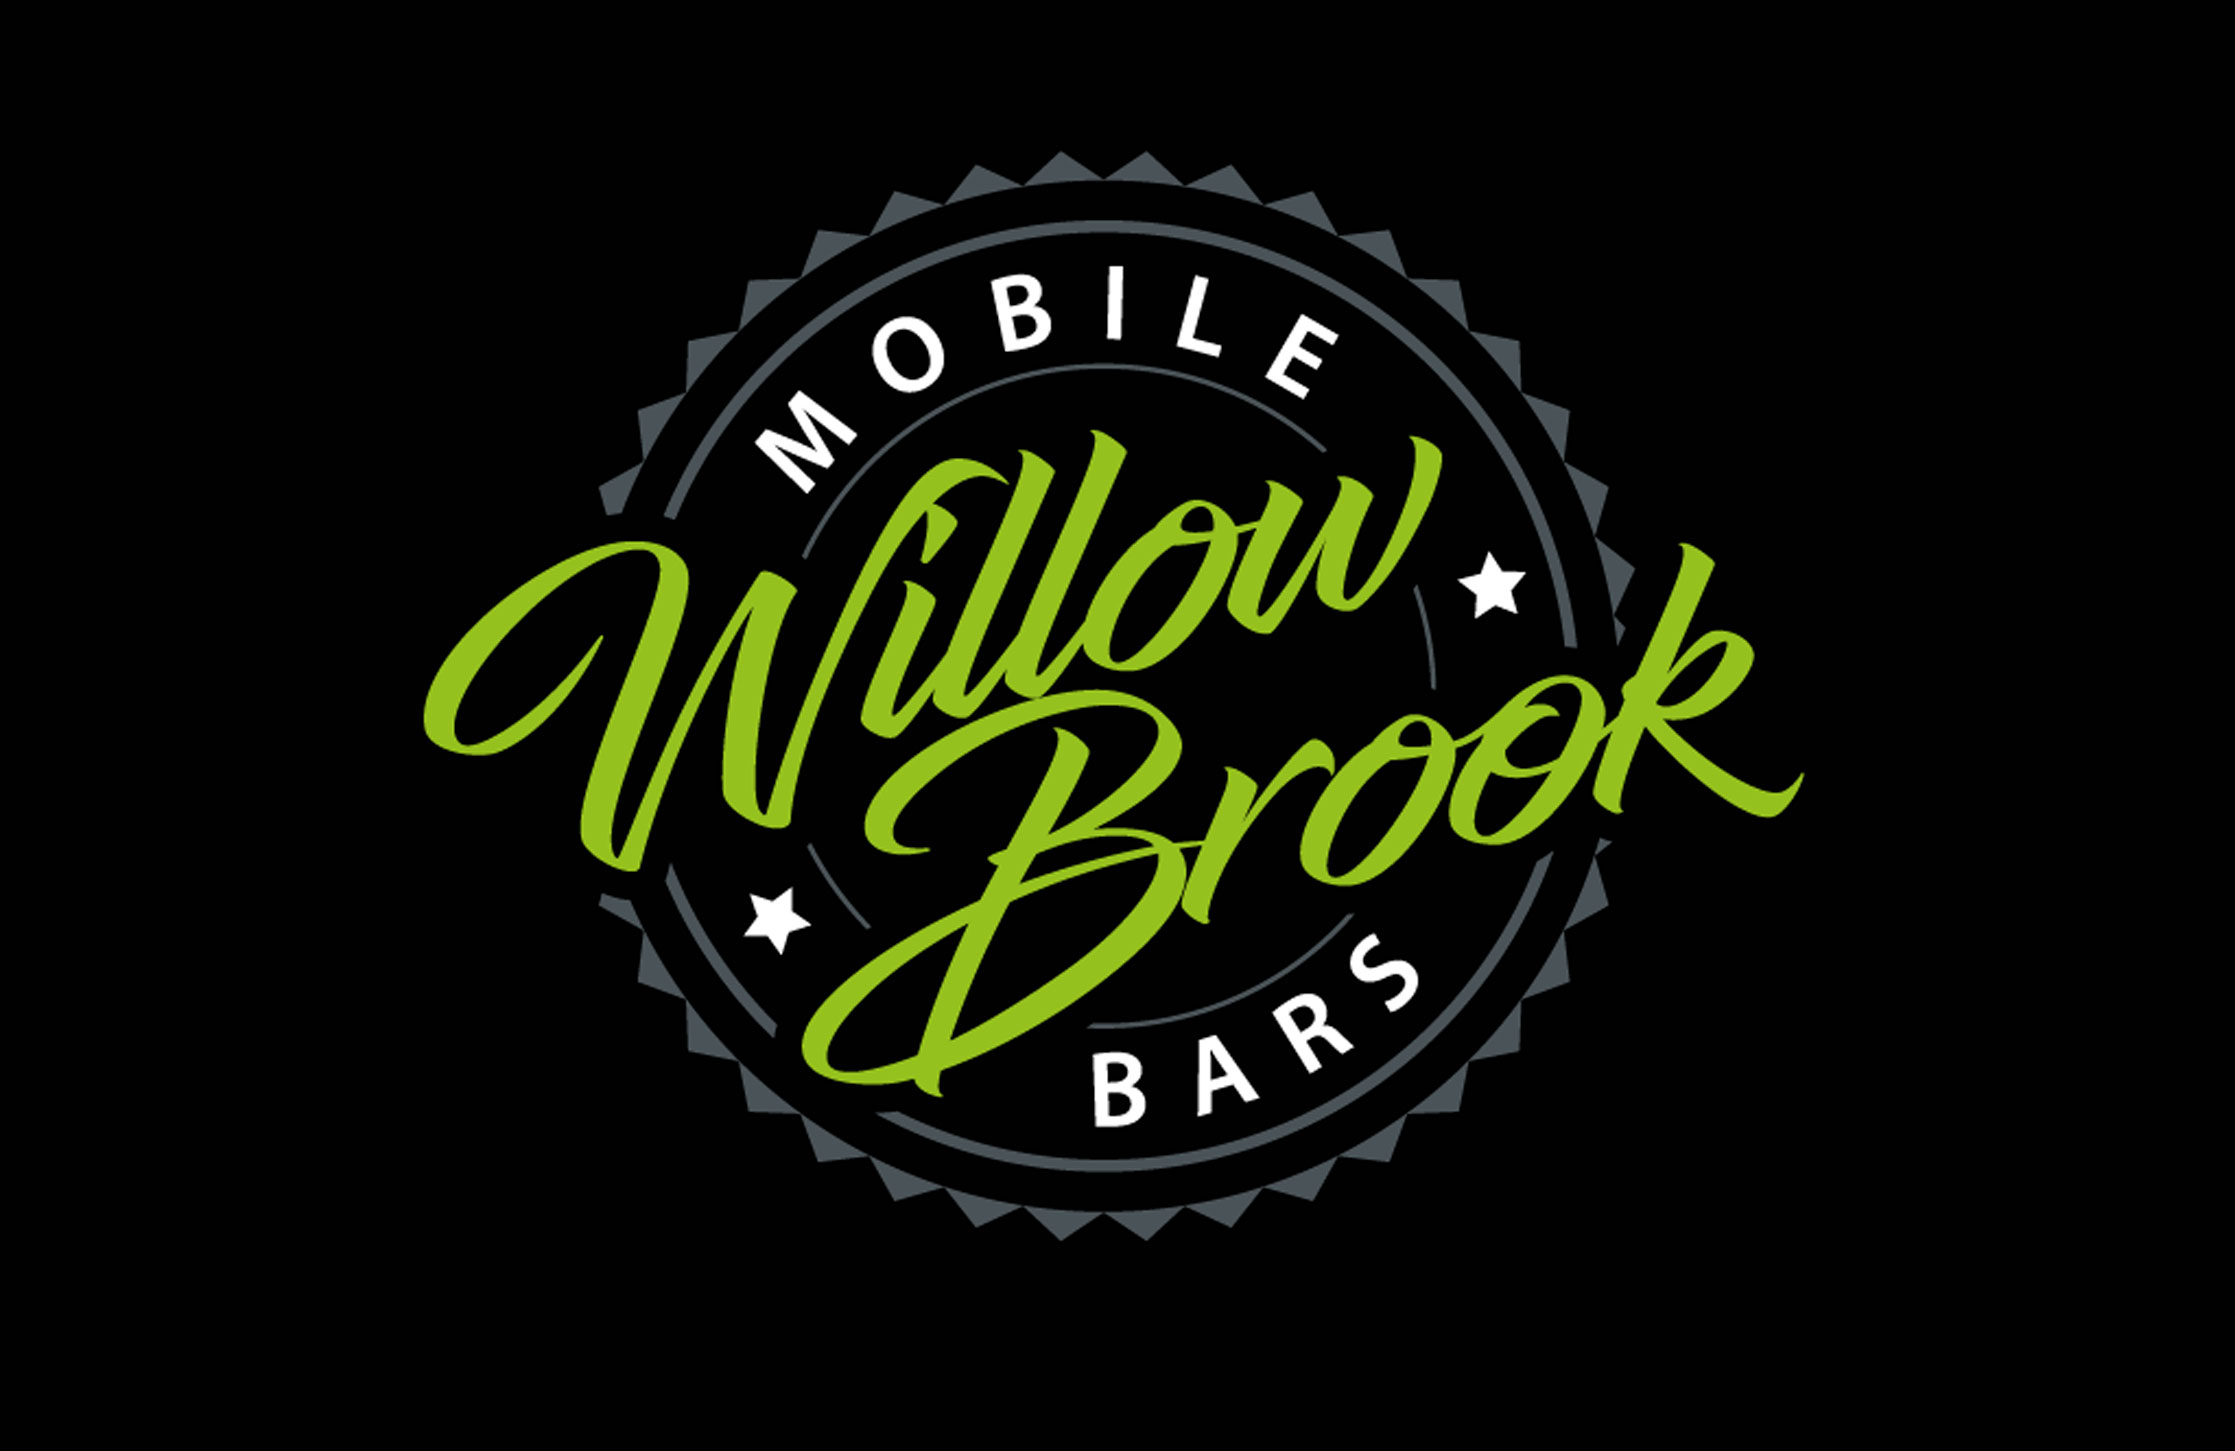 Design of the Willow Brooke Bars logo